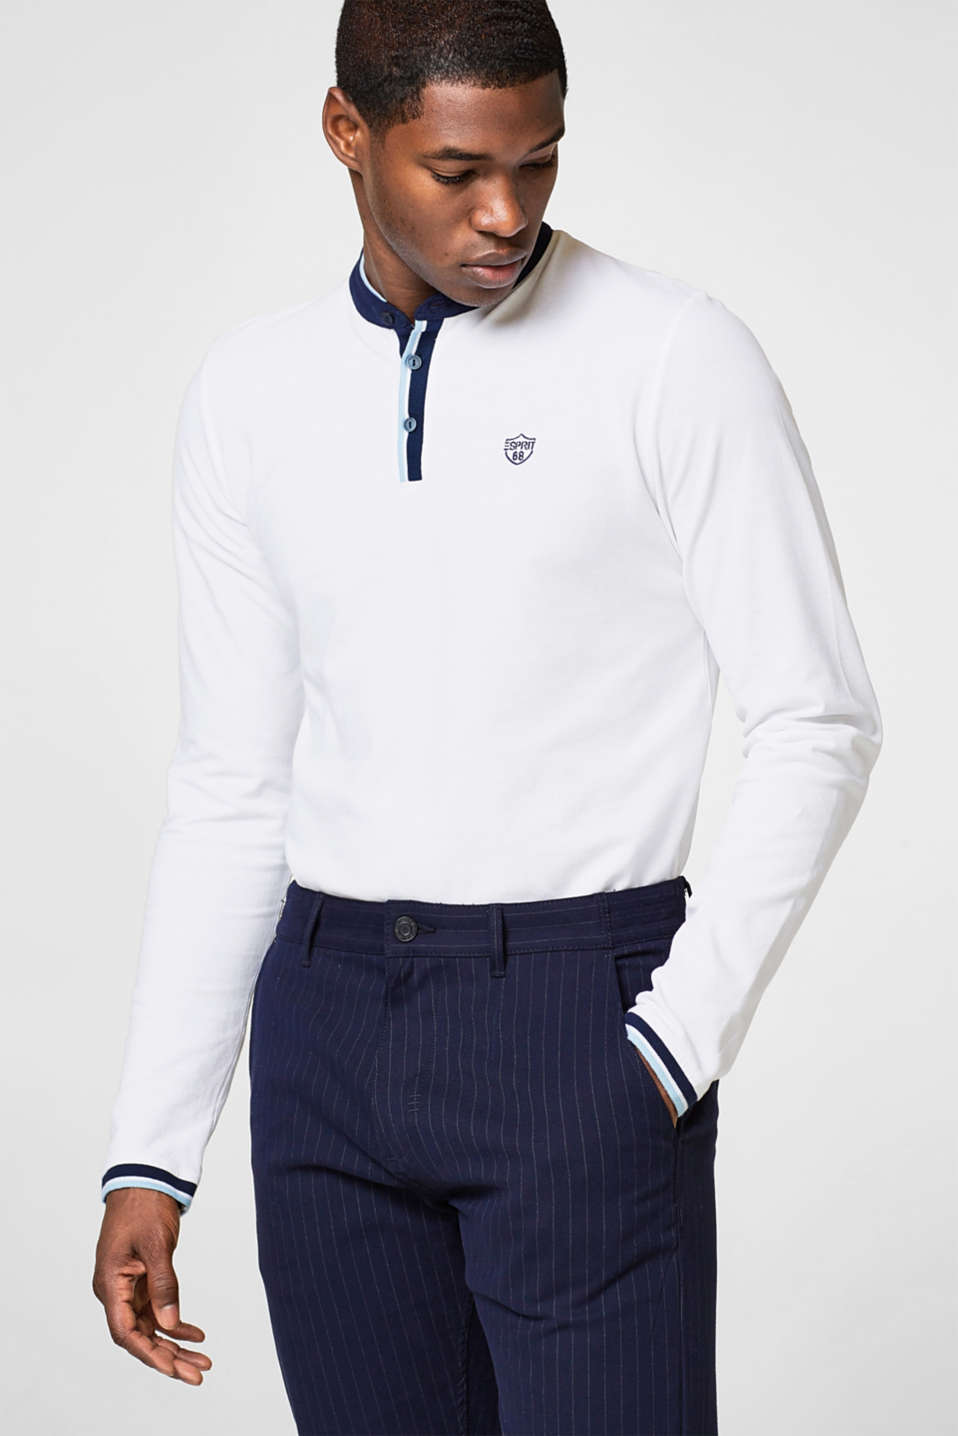 Esprit - Long sleeve polo shirt in 100% cotton